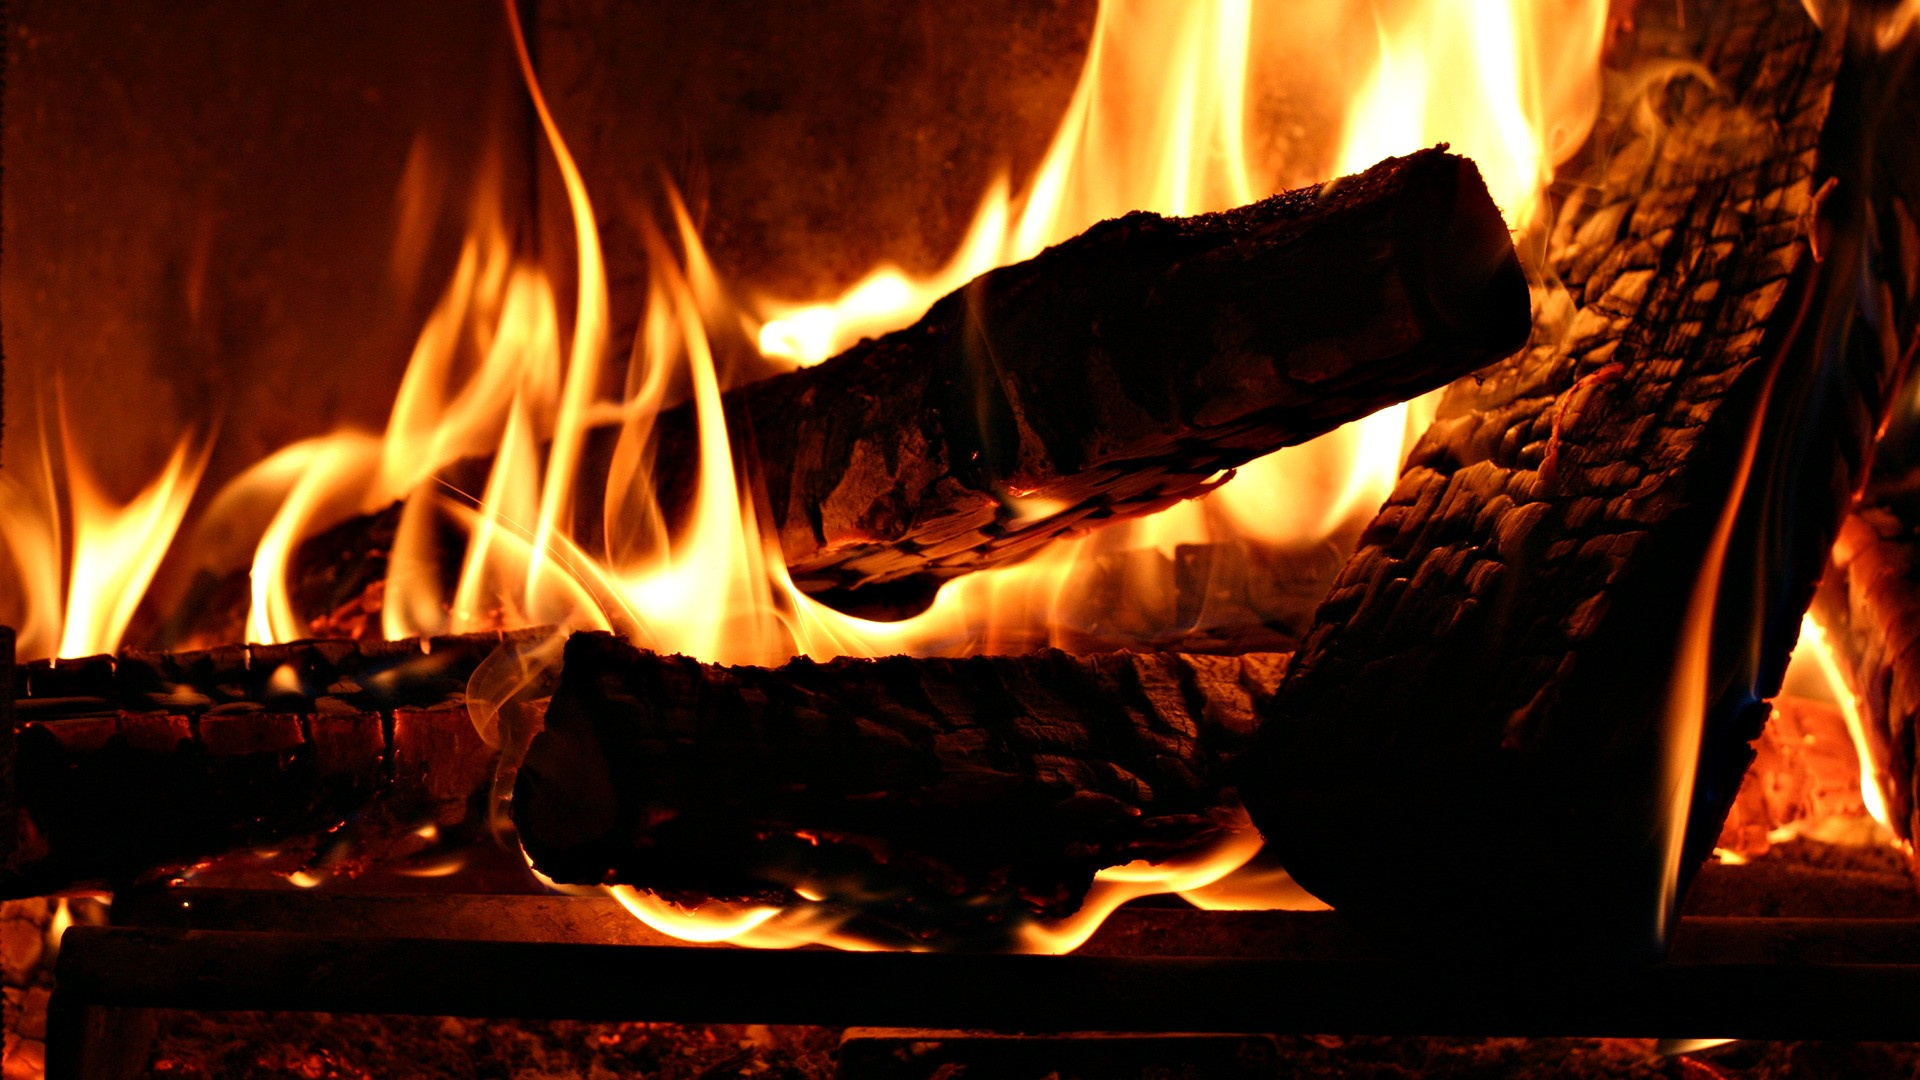 fireplace background download free beautiful full hd